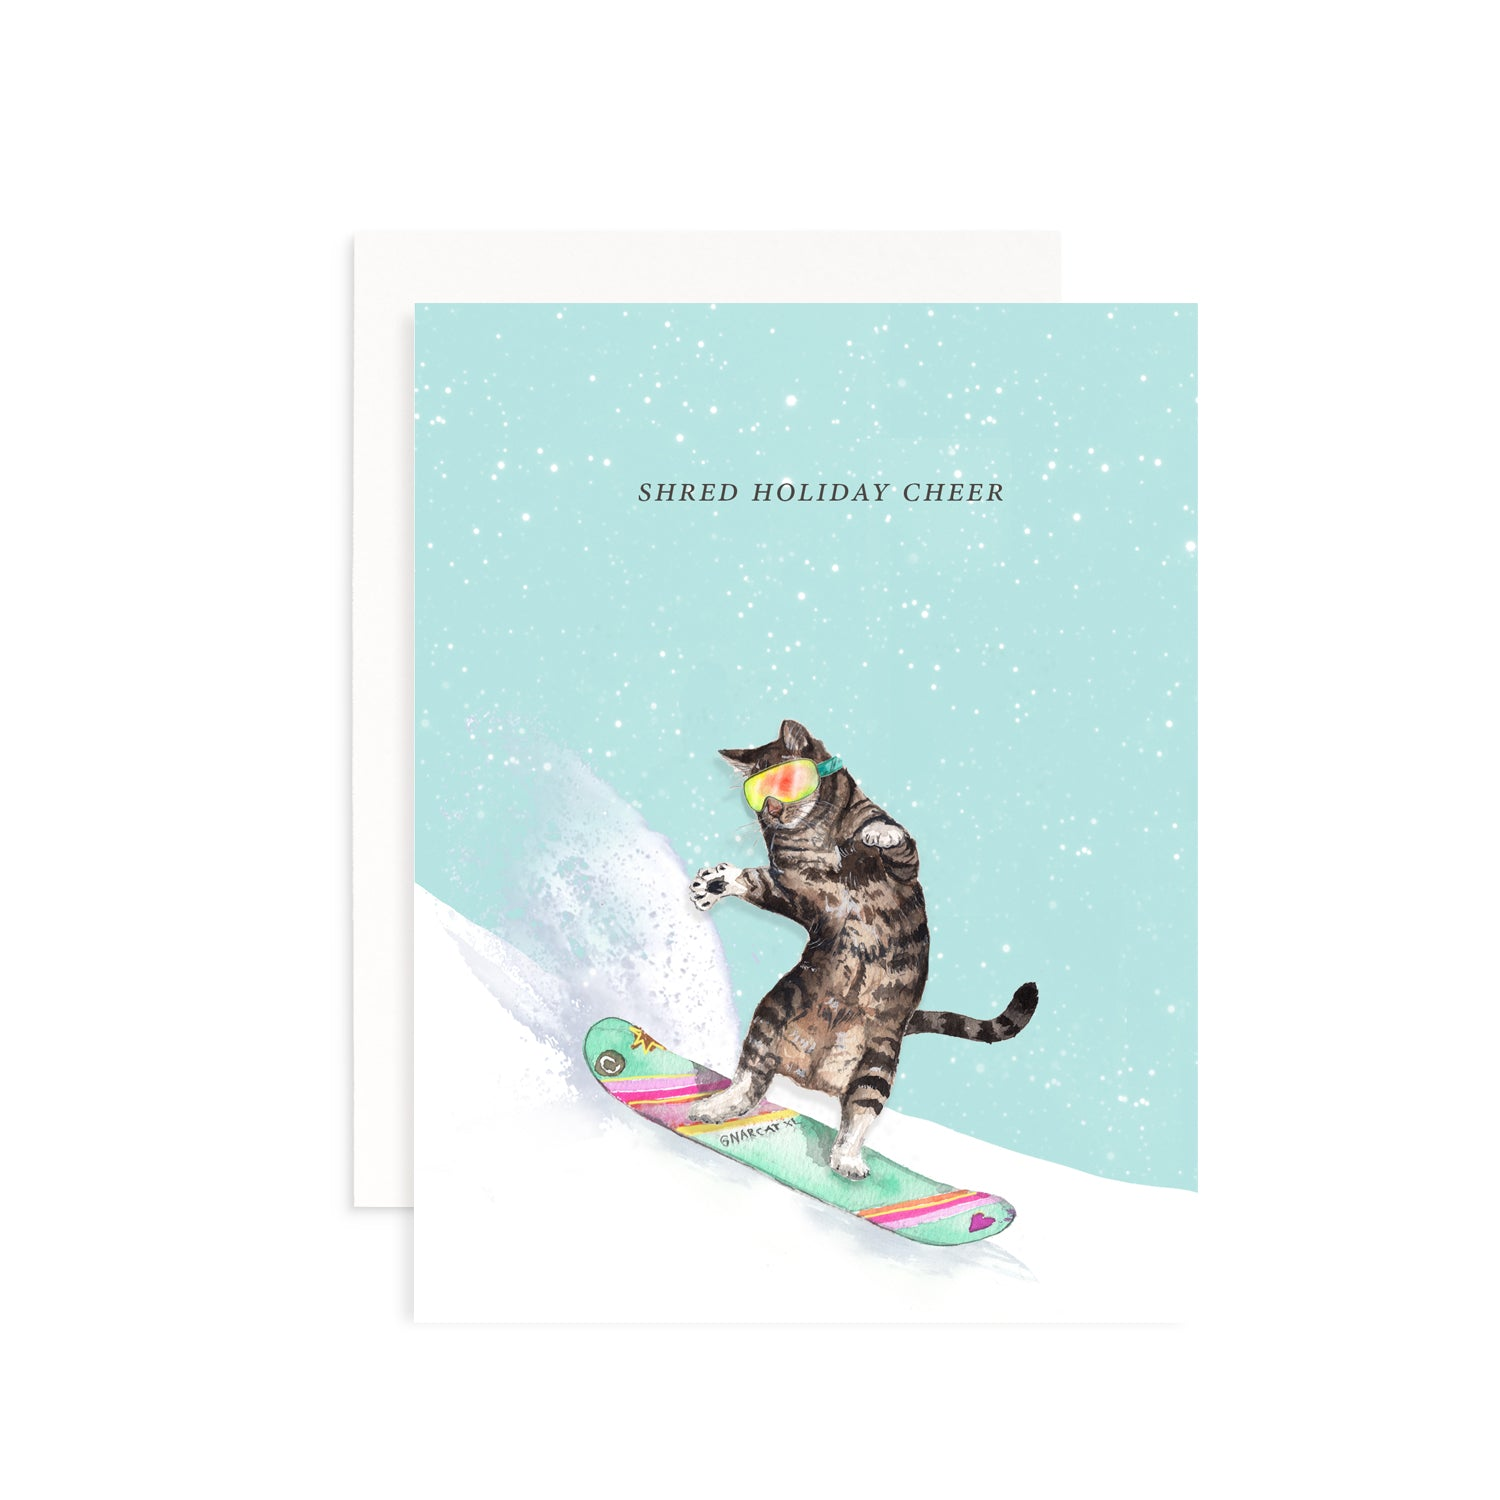 Shred Holiday Cheer Greeting Card